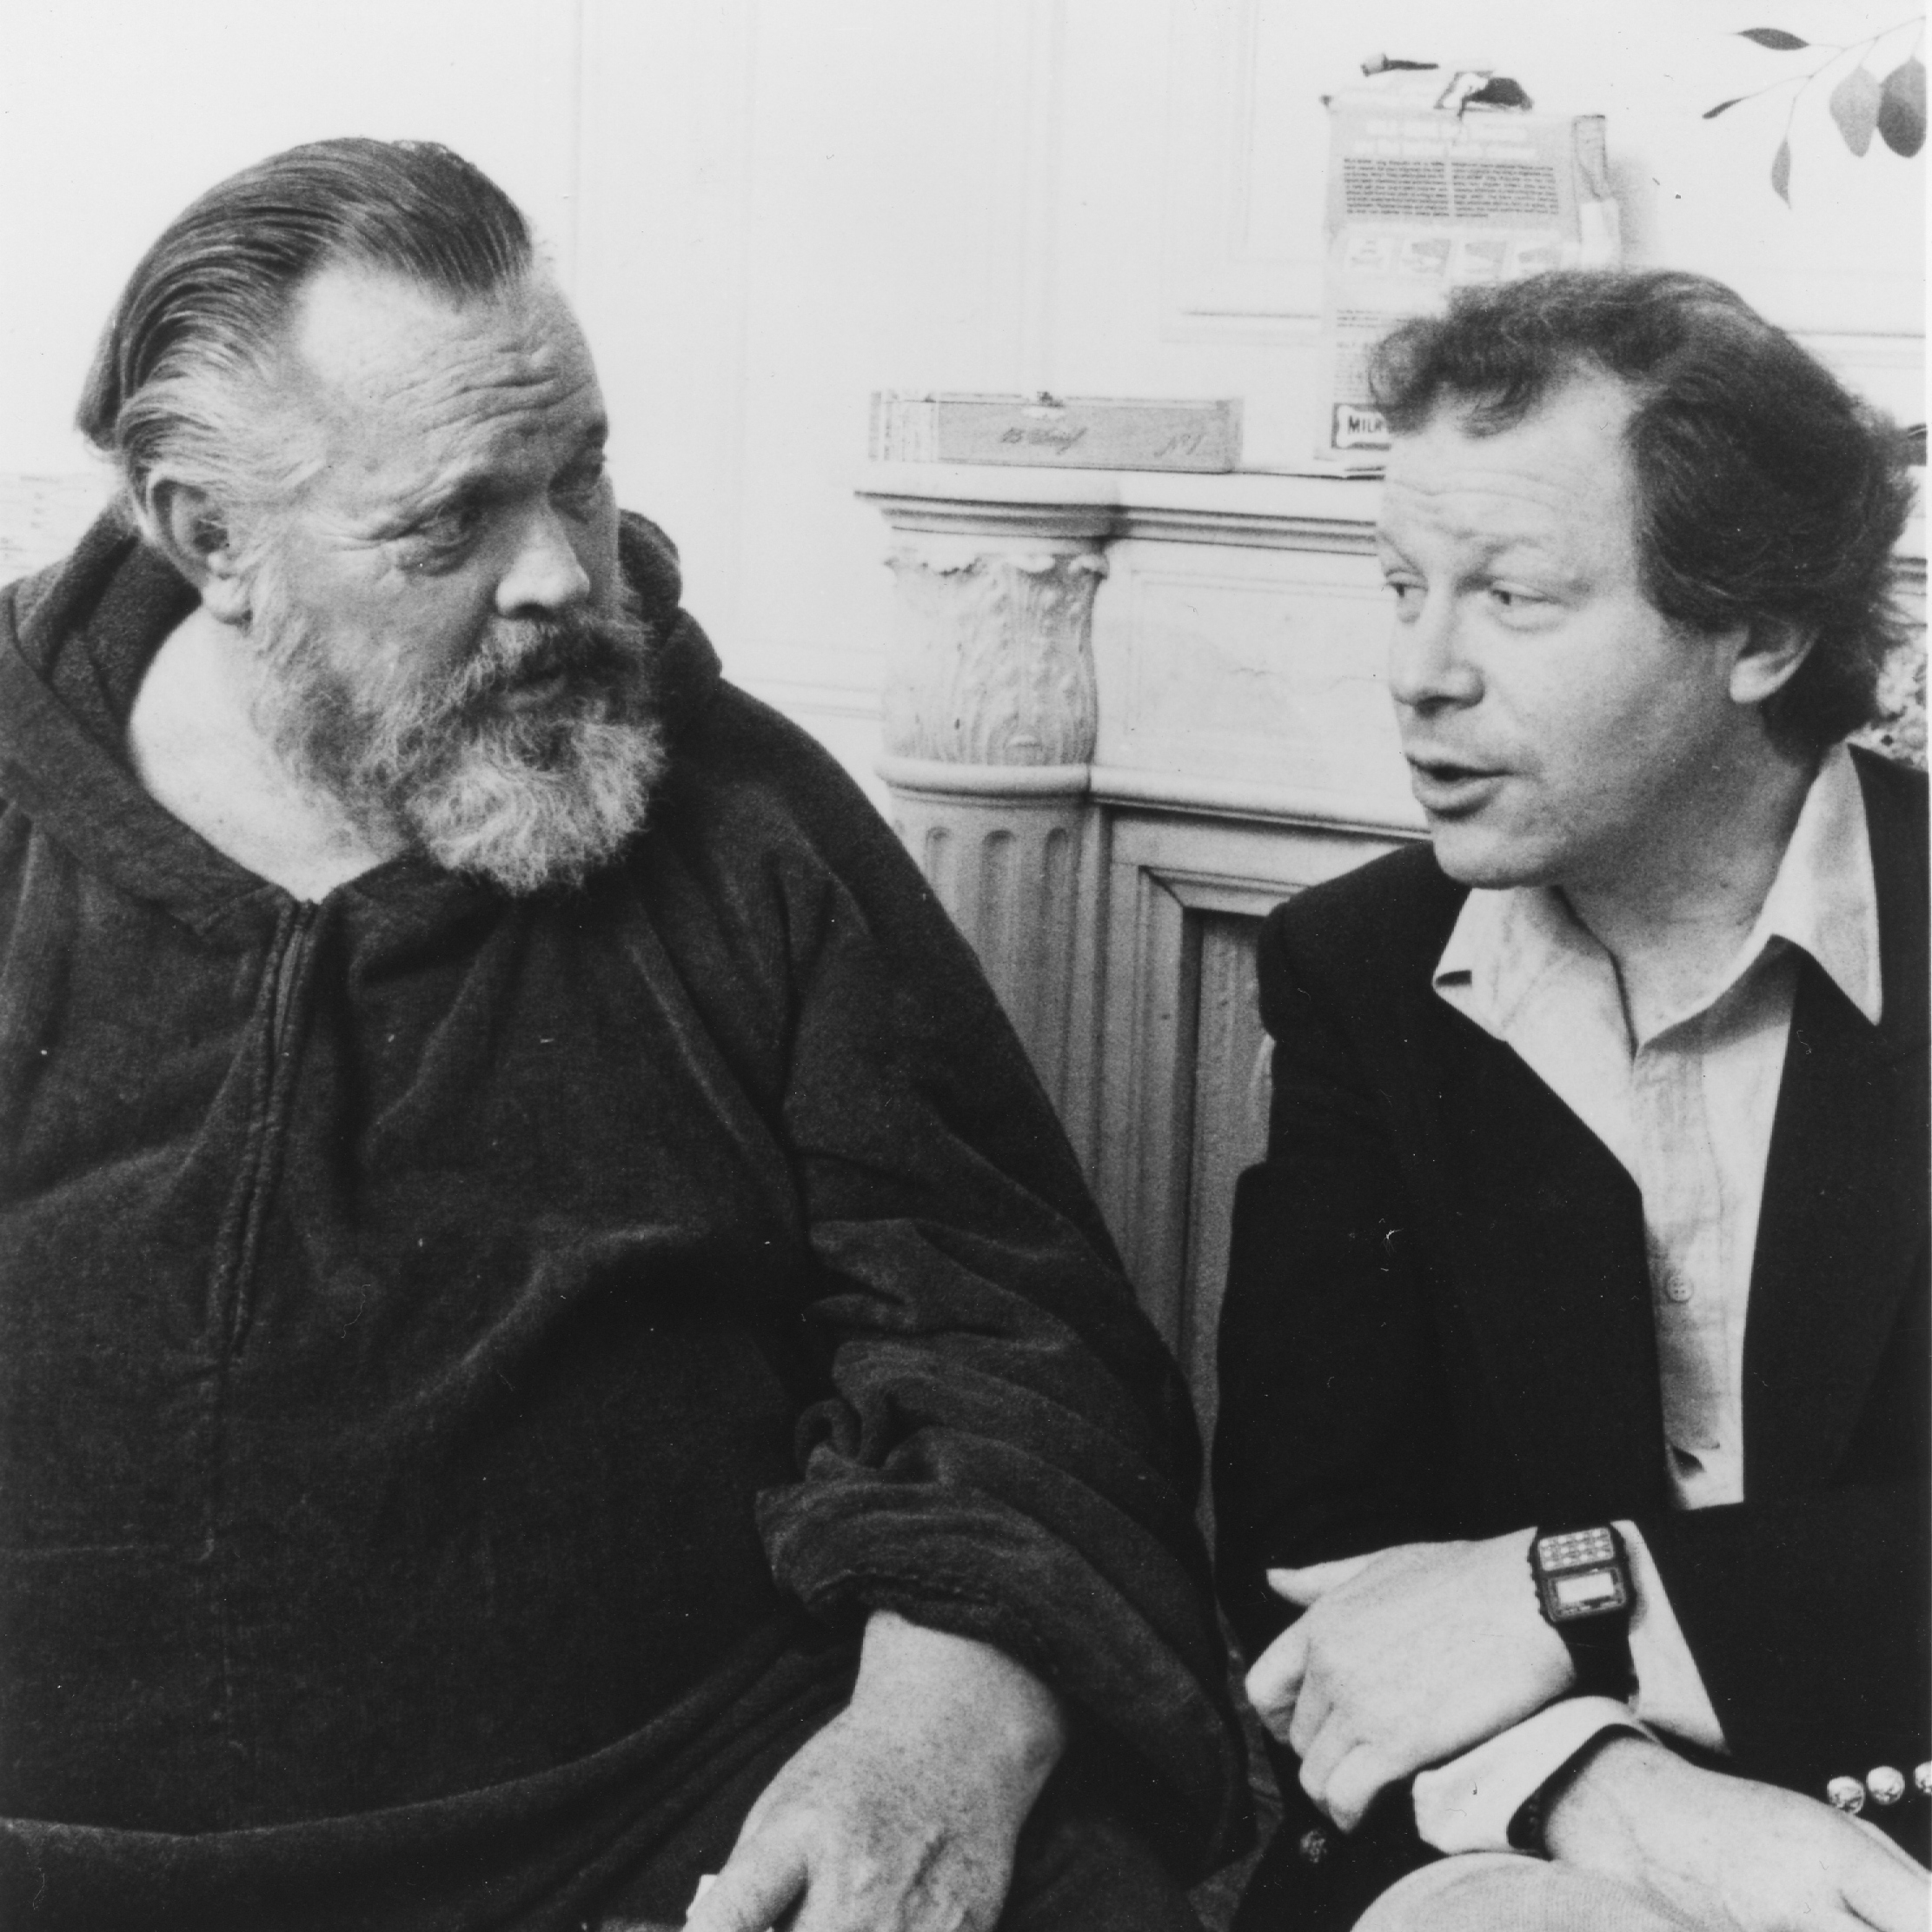 Henry Jaglom was a close friend of Orson Welles, and co-starred in Someone To Love, where Welles made his final film appearance.